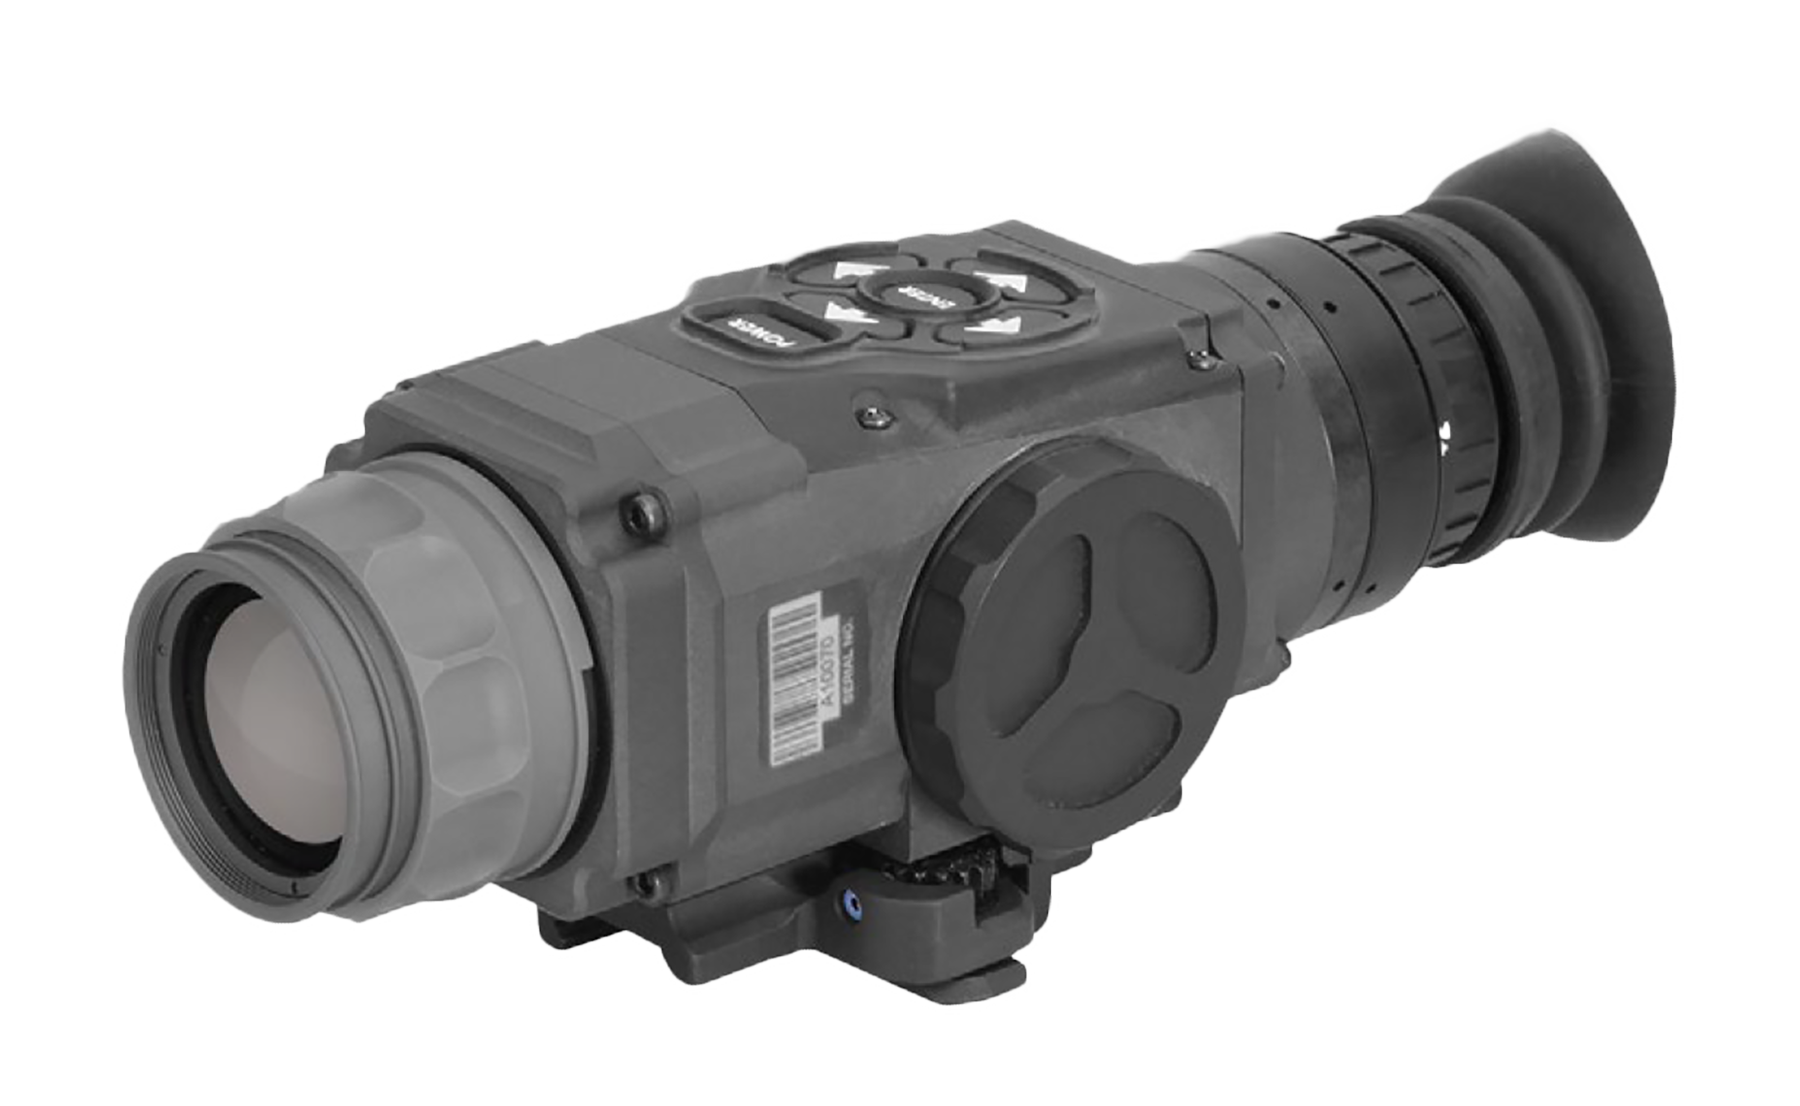 ATN  TIWSMT642B ThOR 640 Thermal Scope  Gen 1.5-12x 50mm 21 deg x 16 deg 30Hz